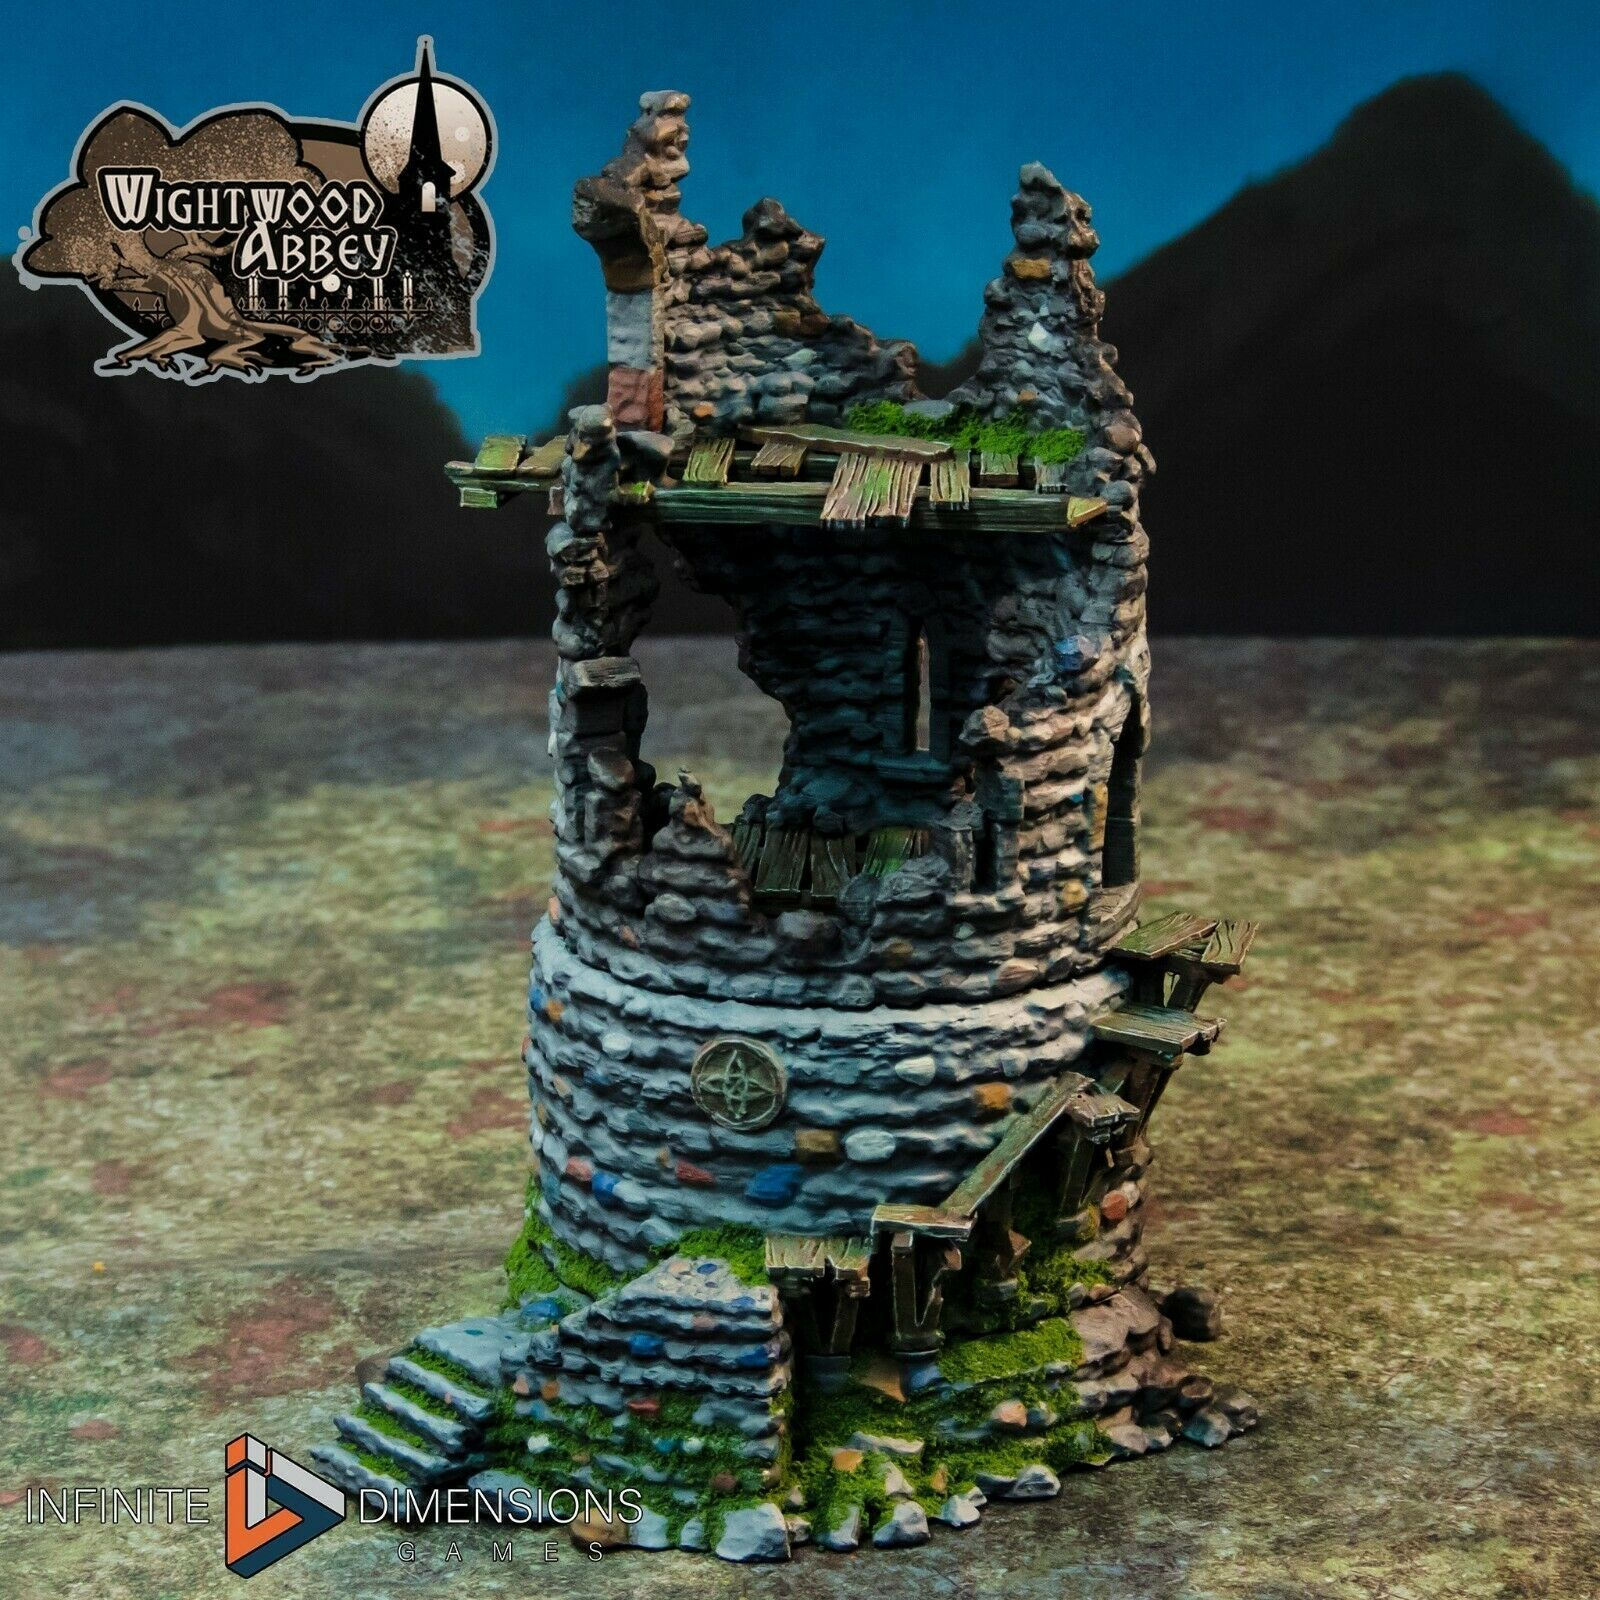 Wightwood Abbey Medieval Ruined Rookery Castle Tower Tabletop Terrain War Games